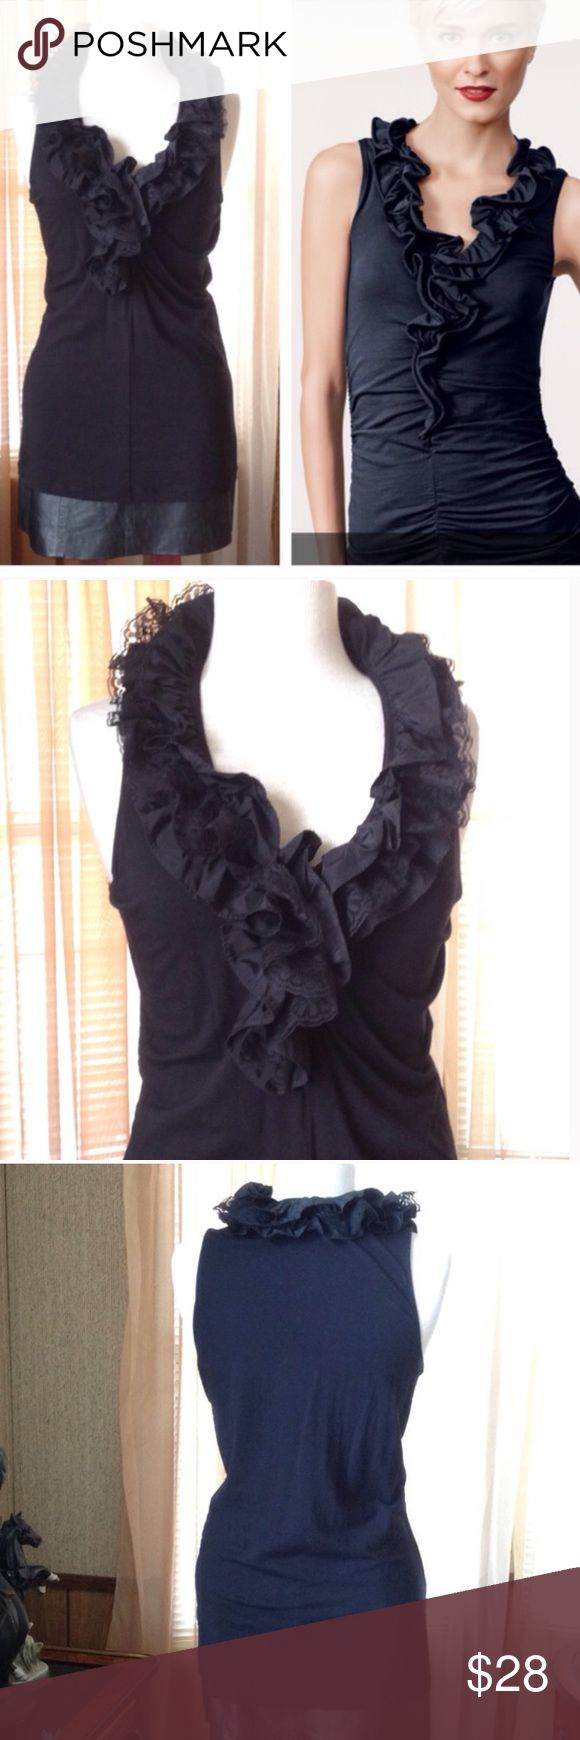 Cani black ruffle top In like new condition. Probably worn just twice.   .                            c CAbi Tops Blouses